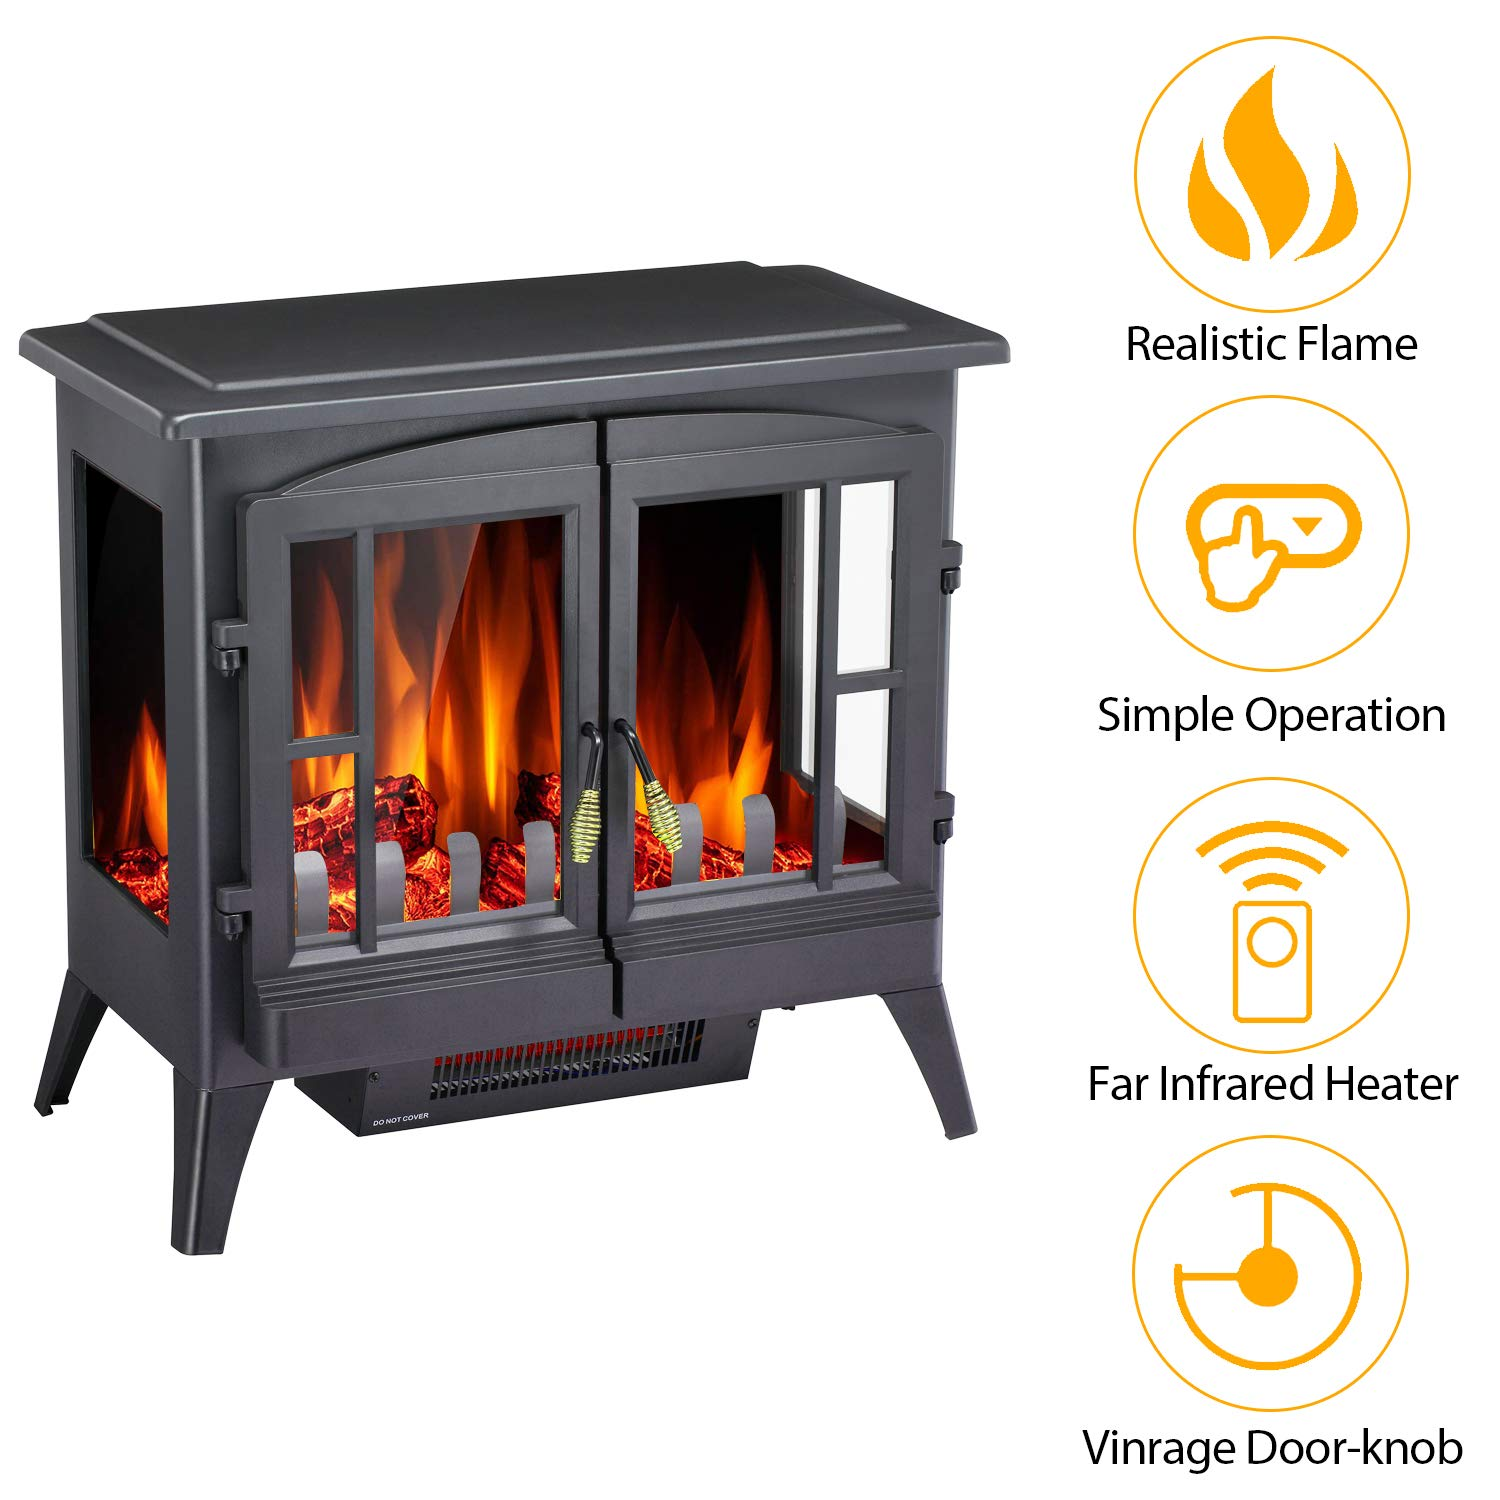 Antratic Star Infrared Electric Fireplace Stove Freestanding, 1000 1500w Portable Indoor Electric Fireplace Heater with Realistic 3D Flames Black